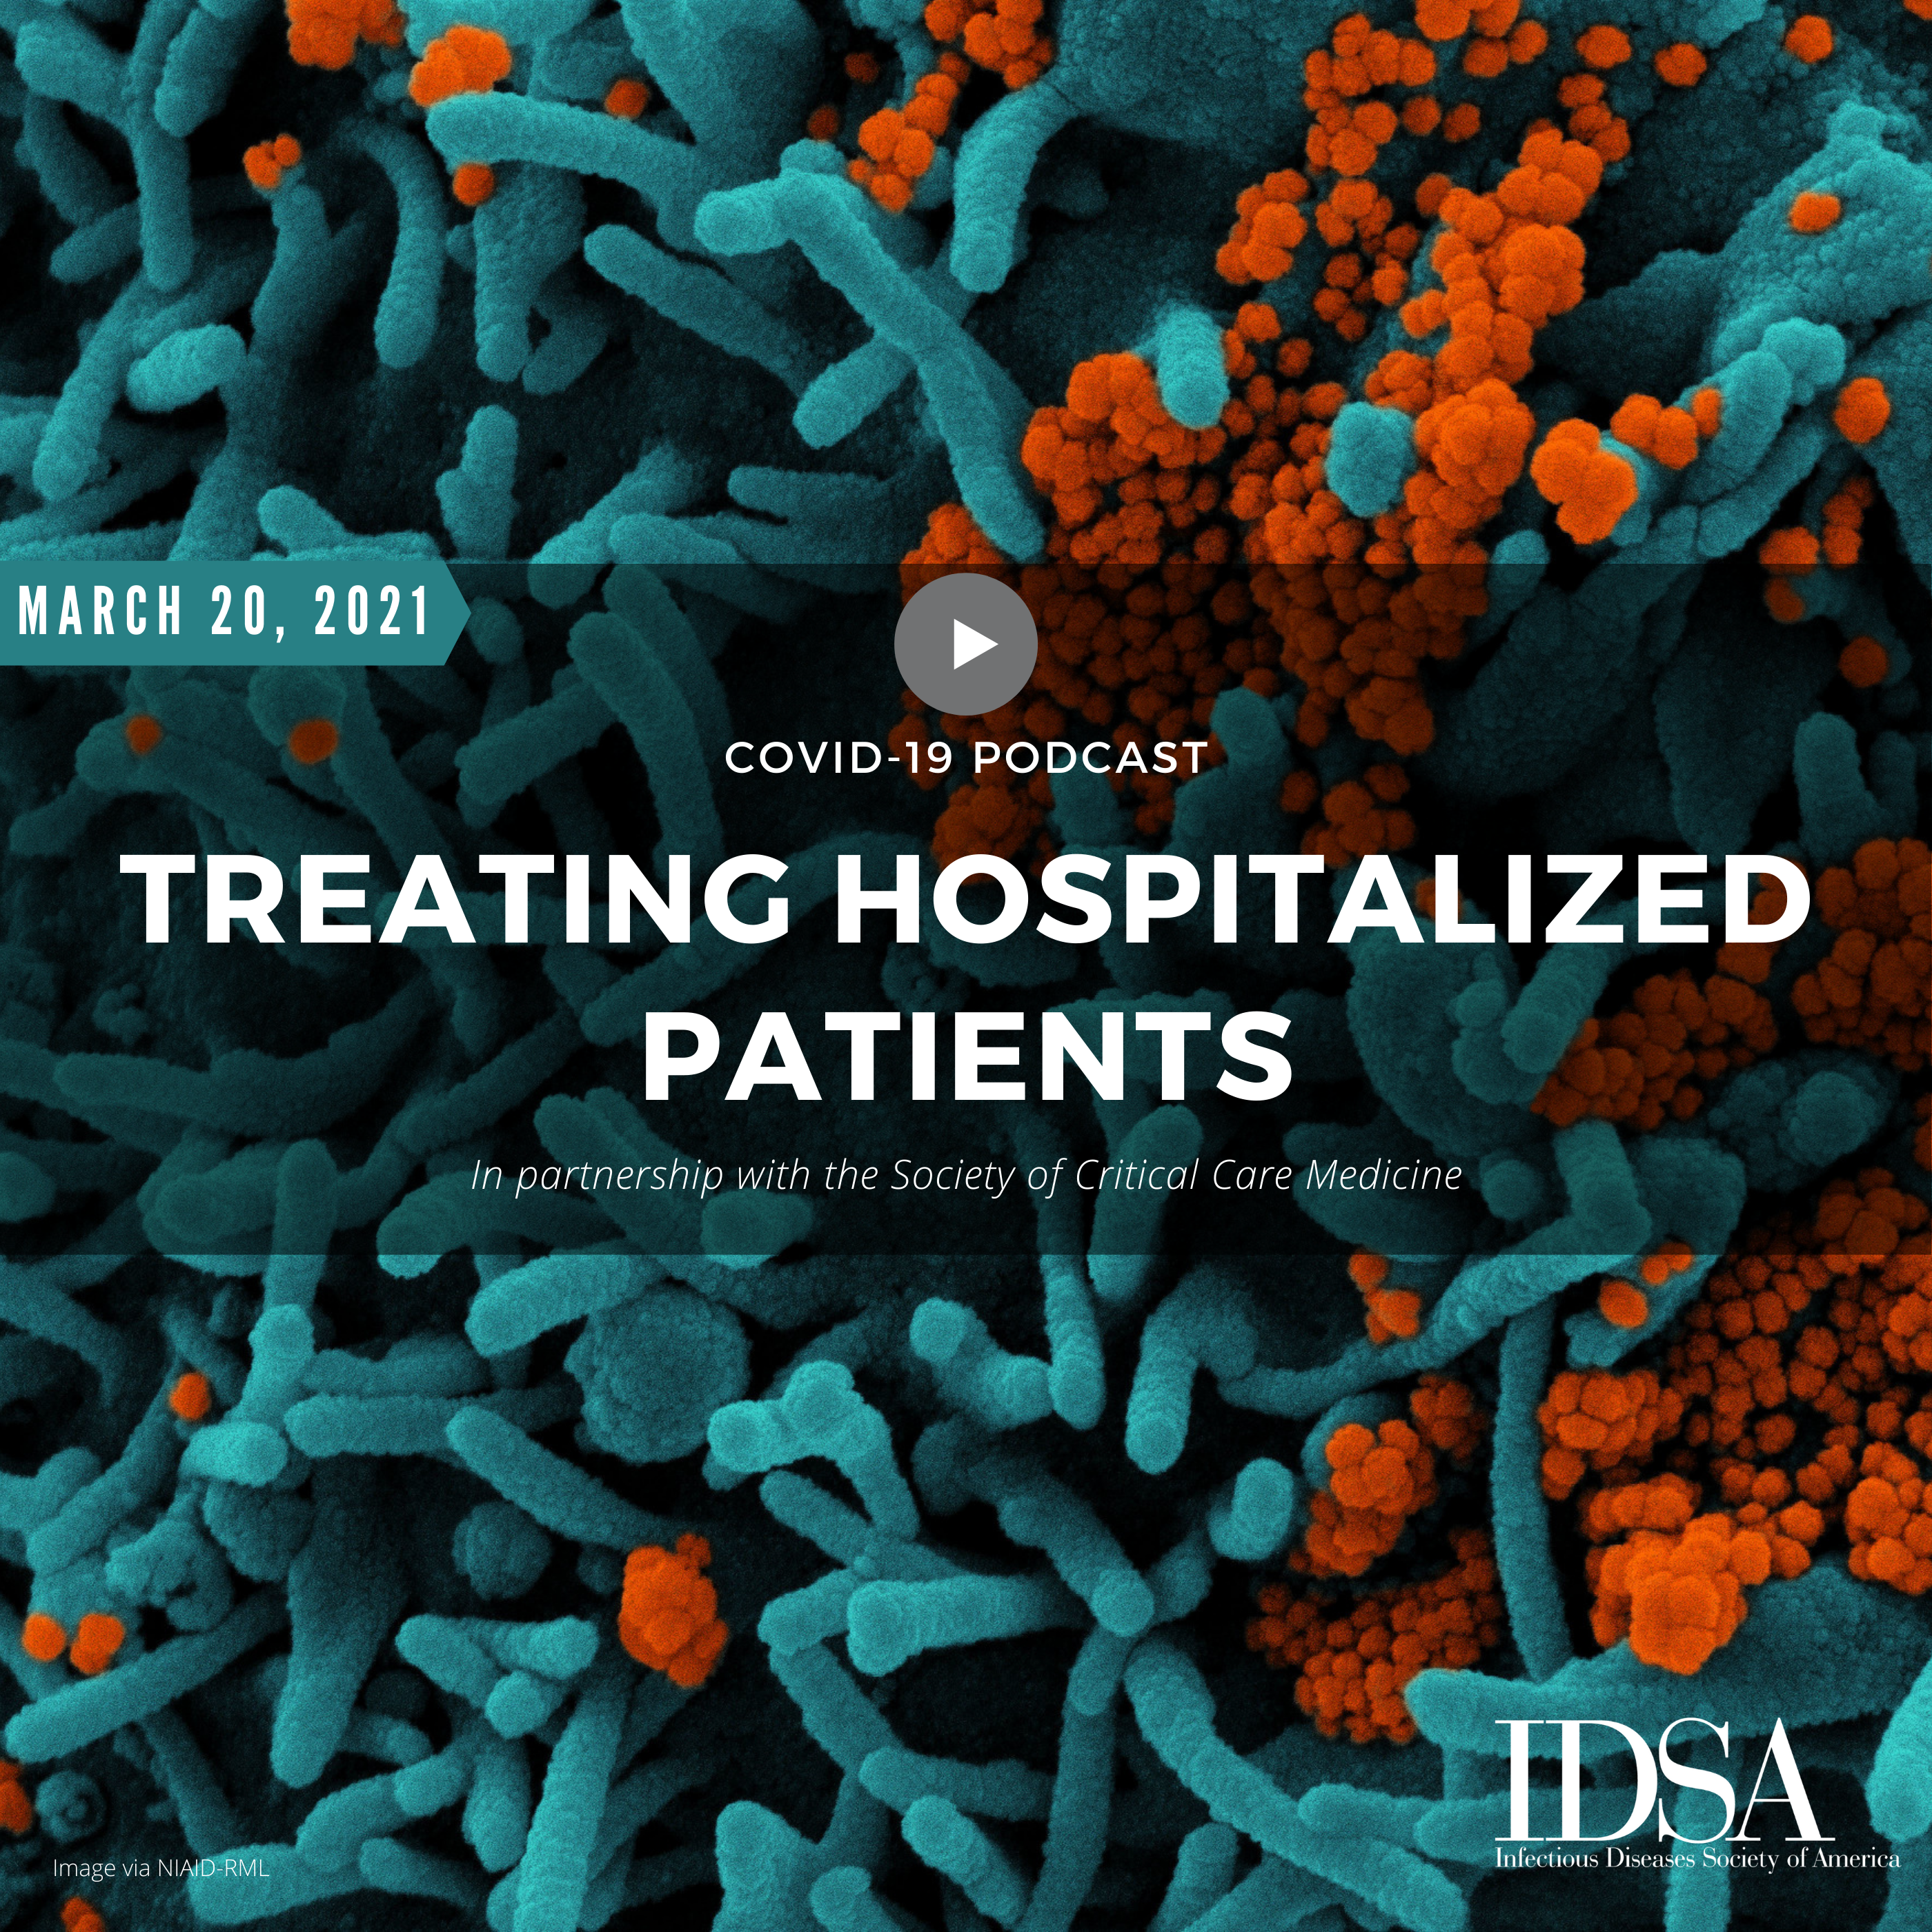 COVID-19: Treating Hospitalized Patients (March 20, 2021)